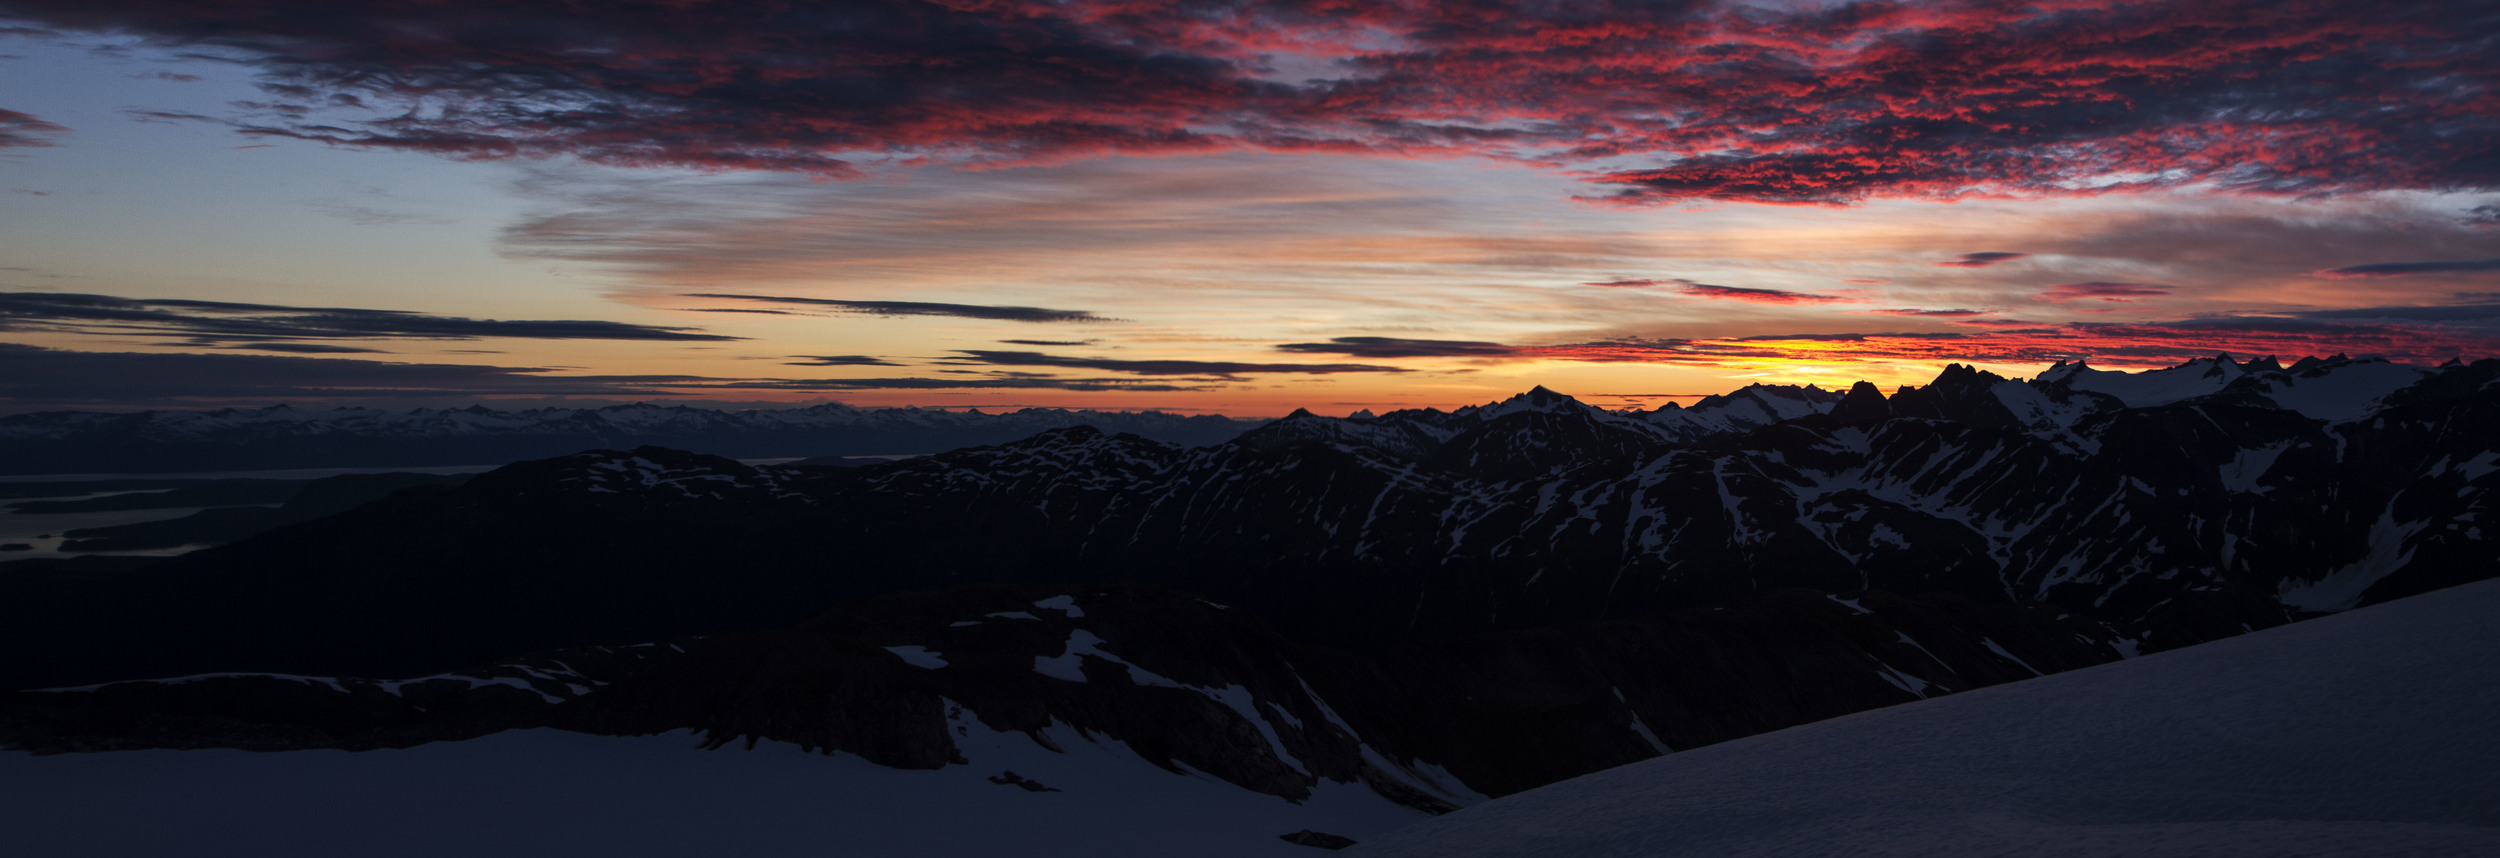 Sunsets and mountains create a feeling of serenity for many JIRP participants, past and present. Photo: Adam Taylor